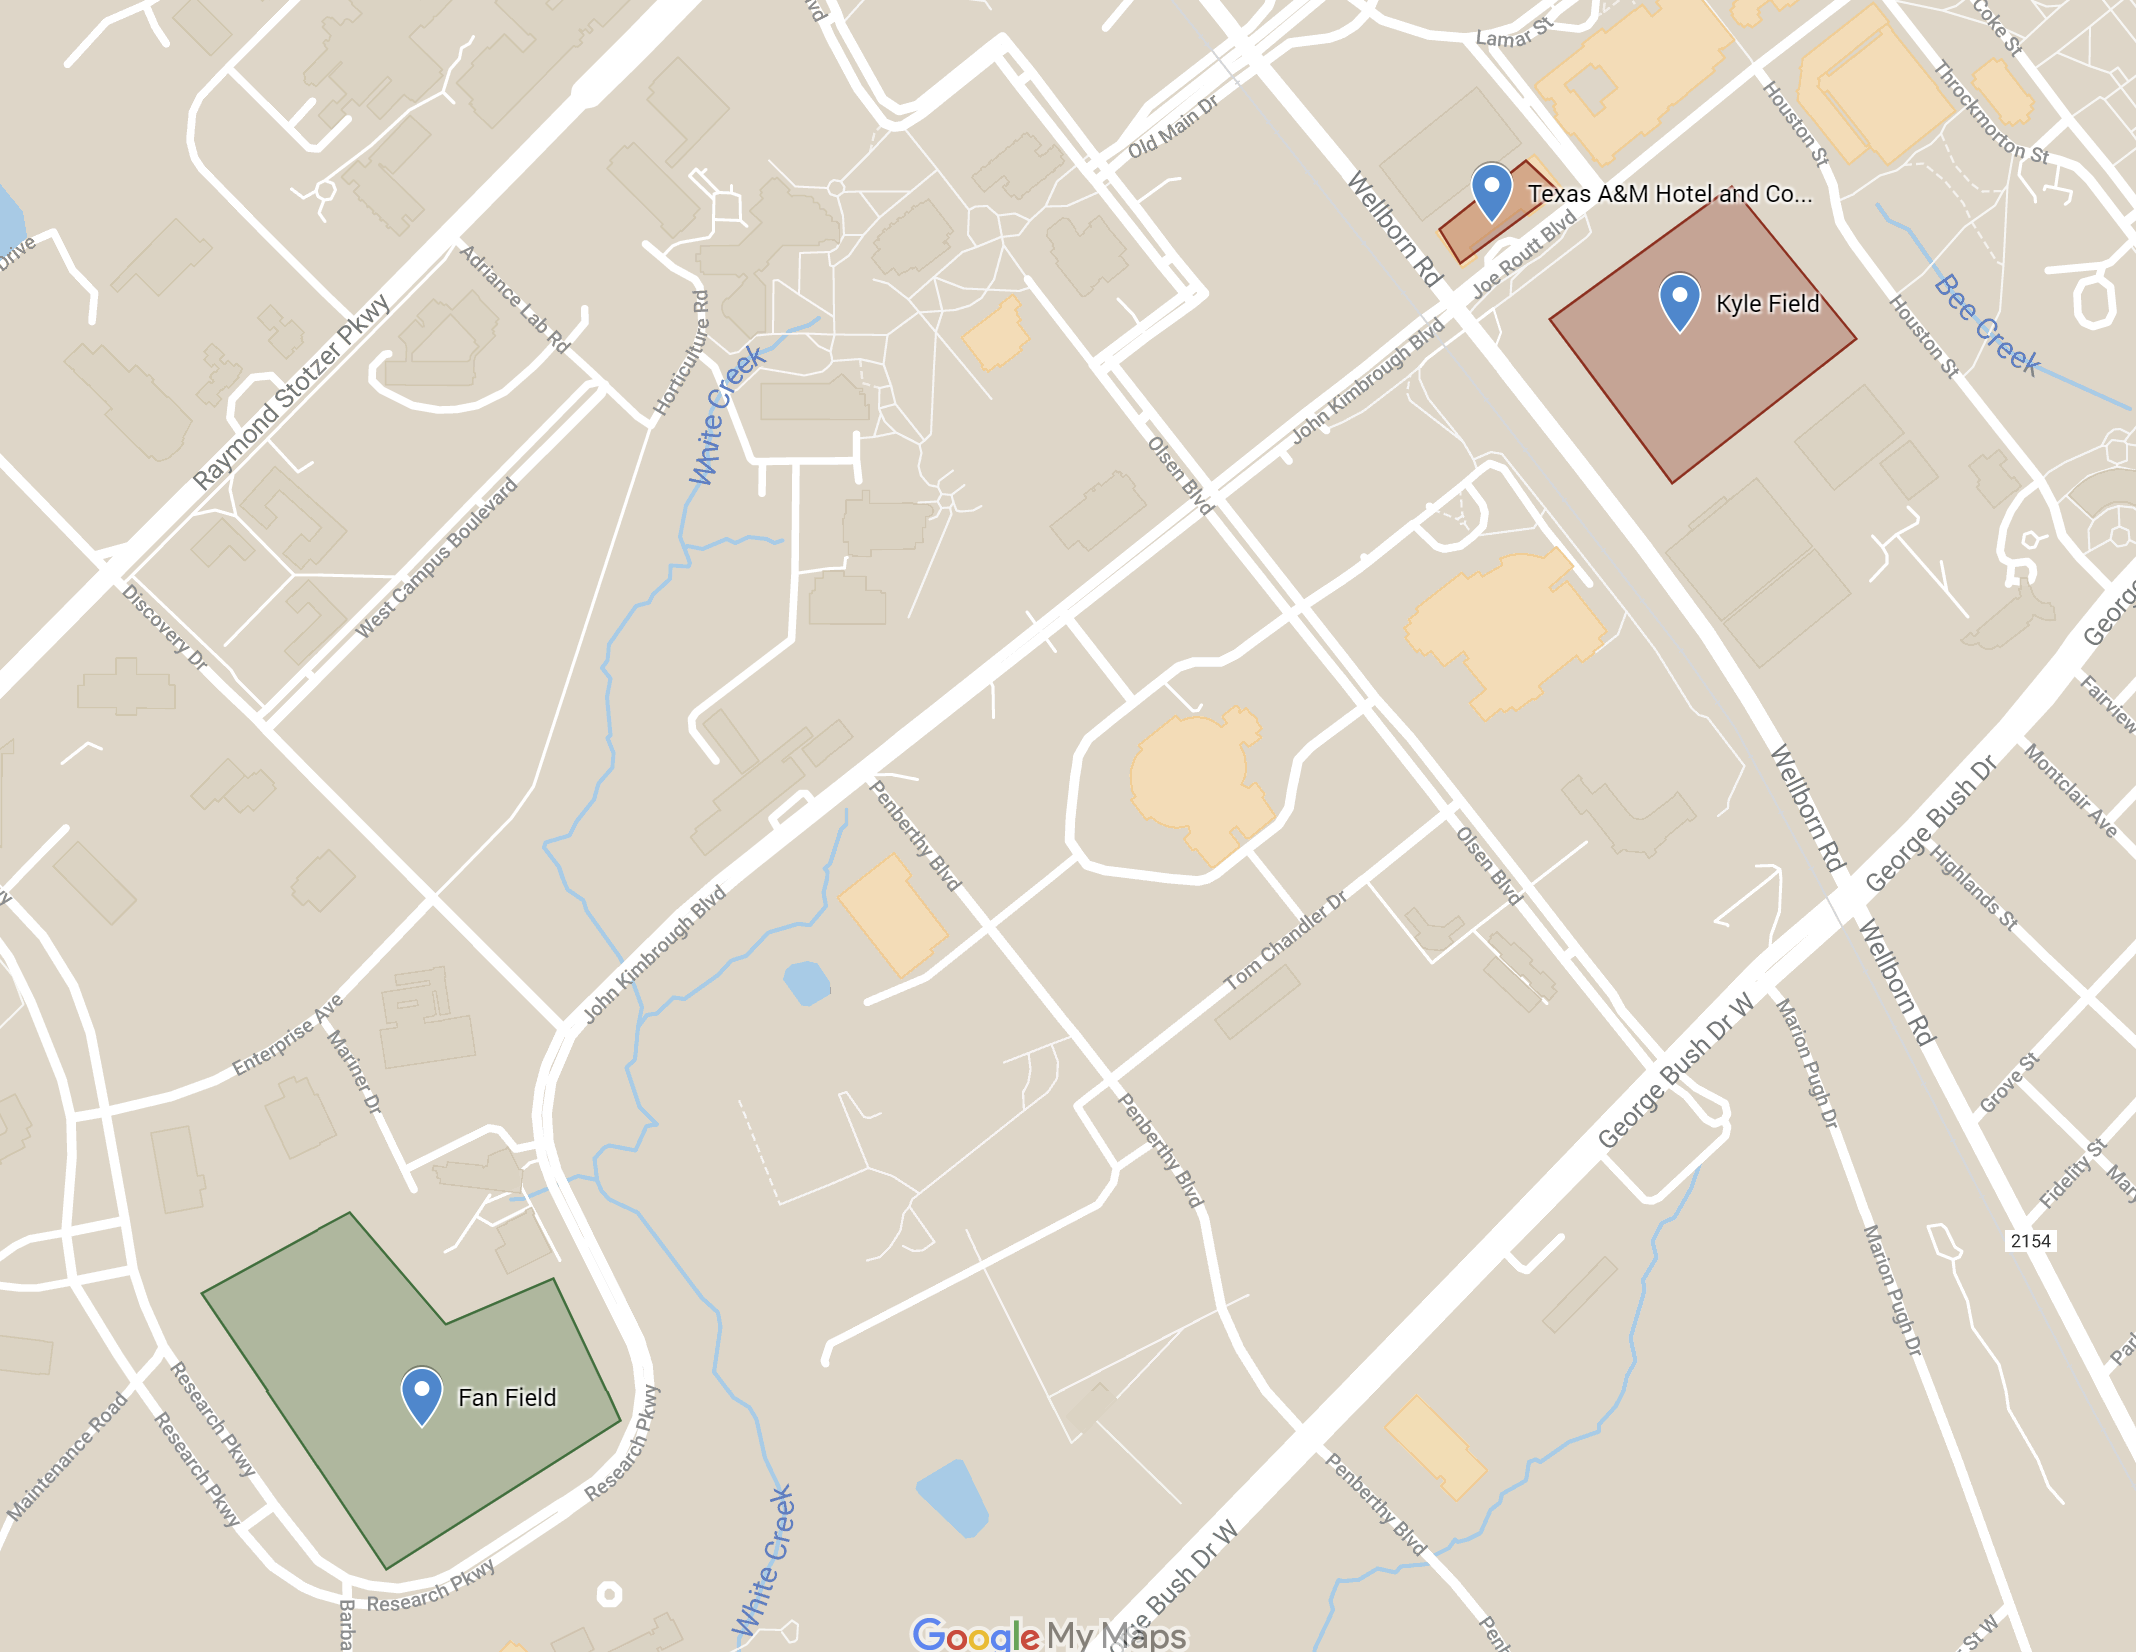 Fan Field Parking Map 2.0